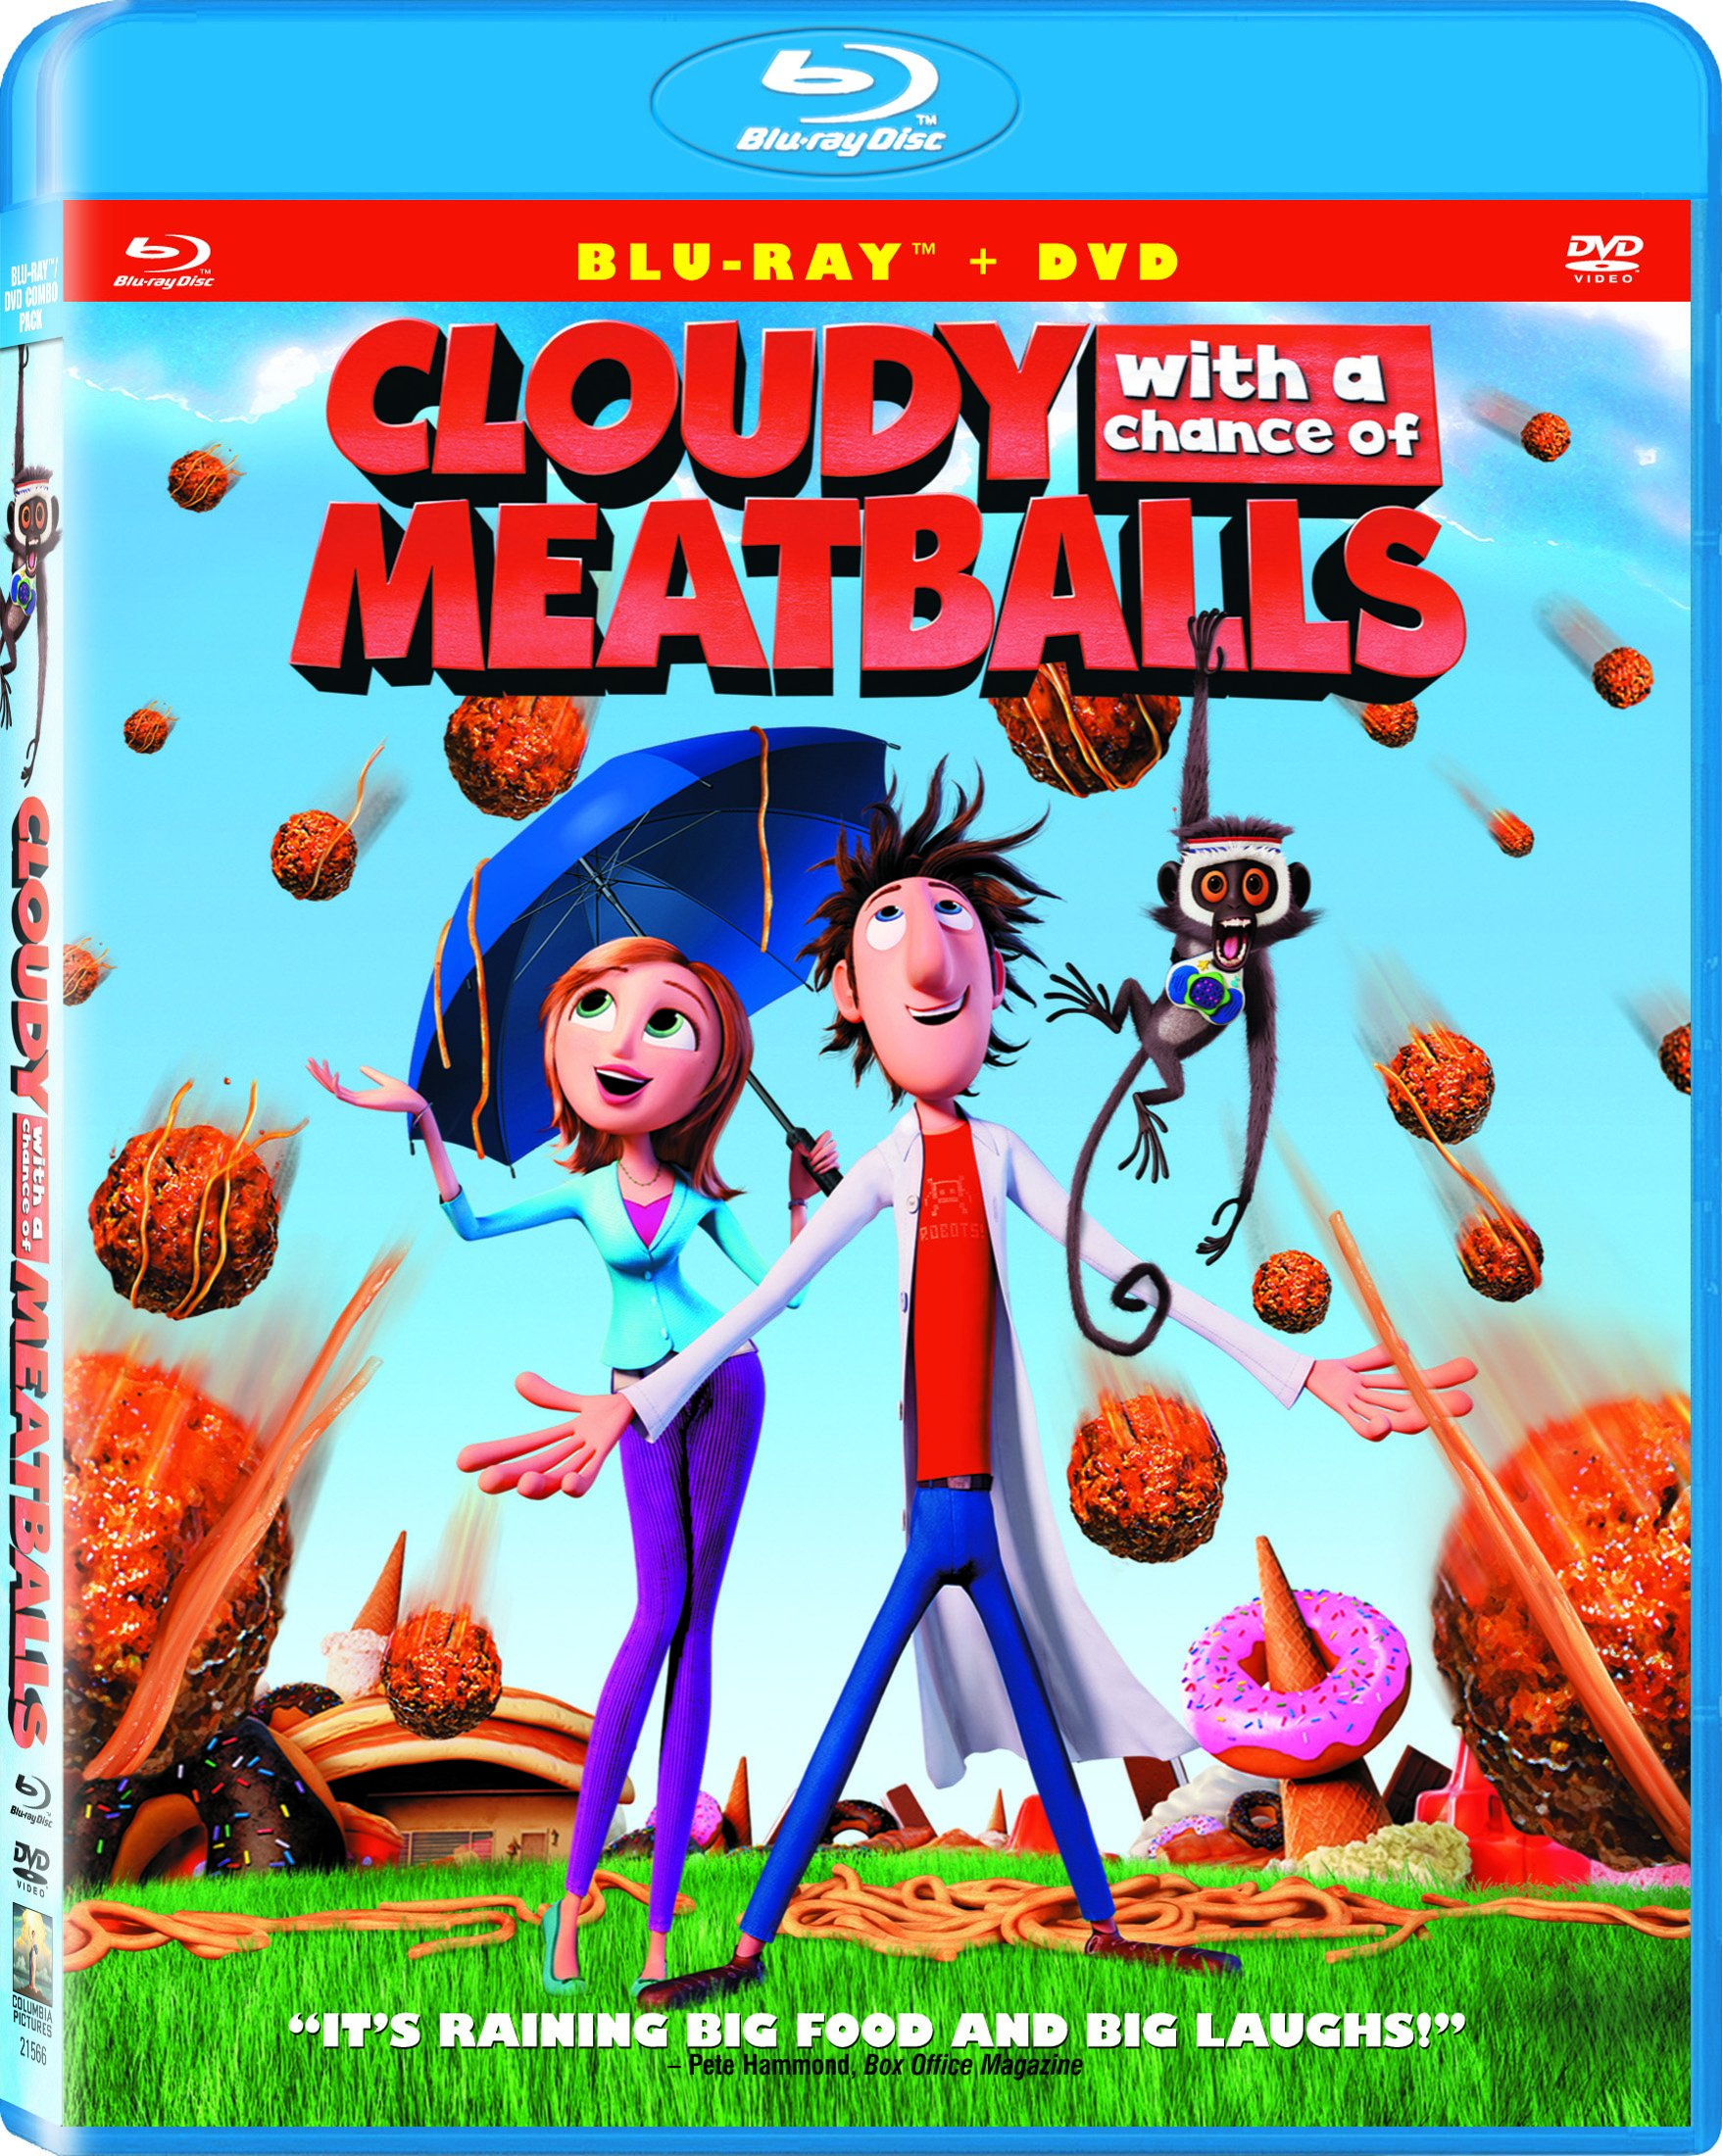 Blu-ray : Cloudy With a Chance of Meatballs (With DVD, , Dubbed, Dolby, AC-3)